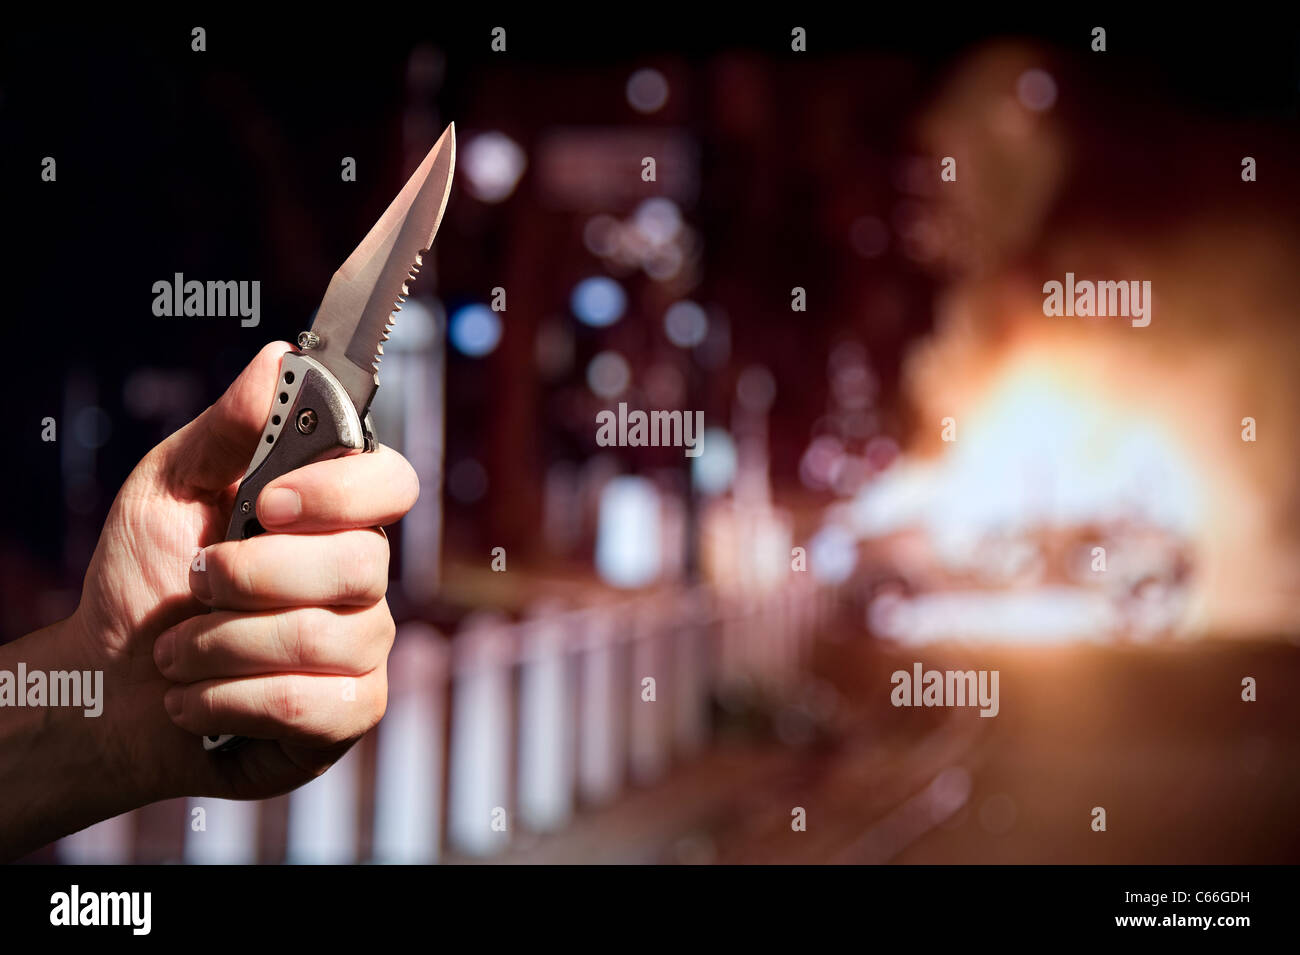 Hand holding a knife with a serrated edge while a car burns in the background. London UK - Stock Image